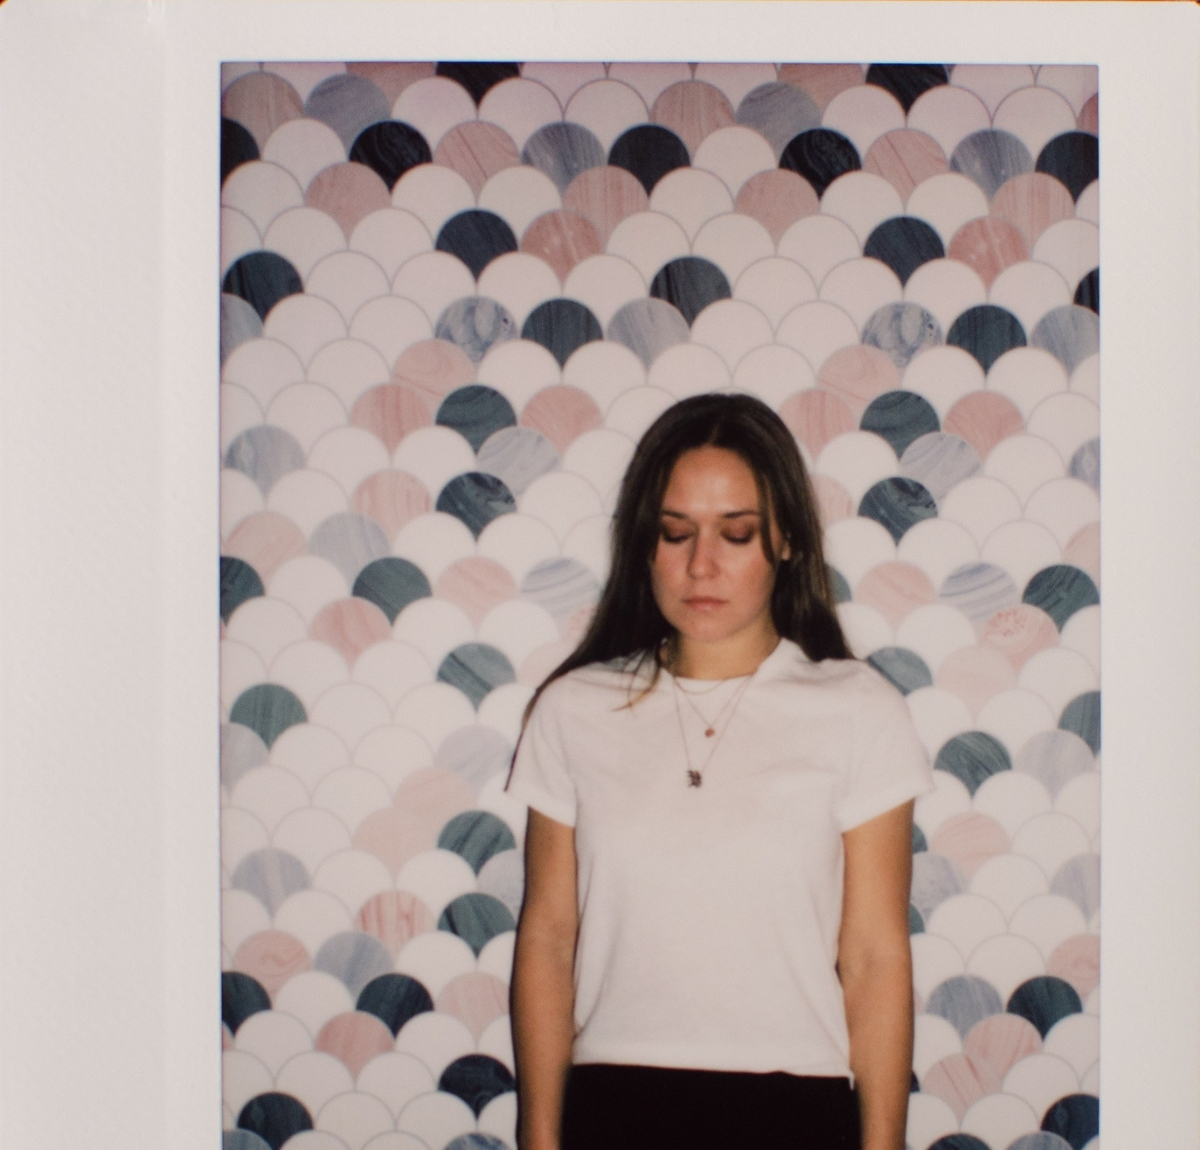 'White Lies' is the latest single from Amille.